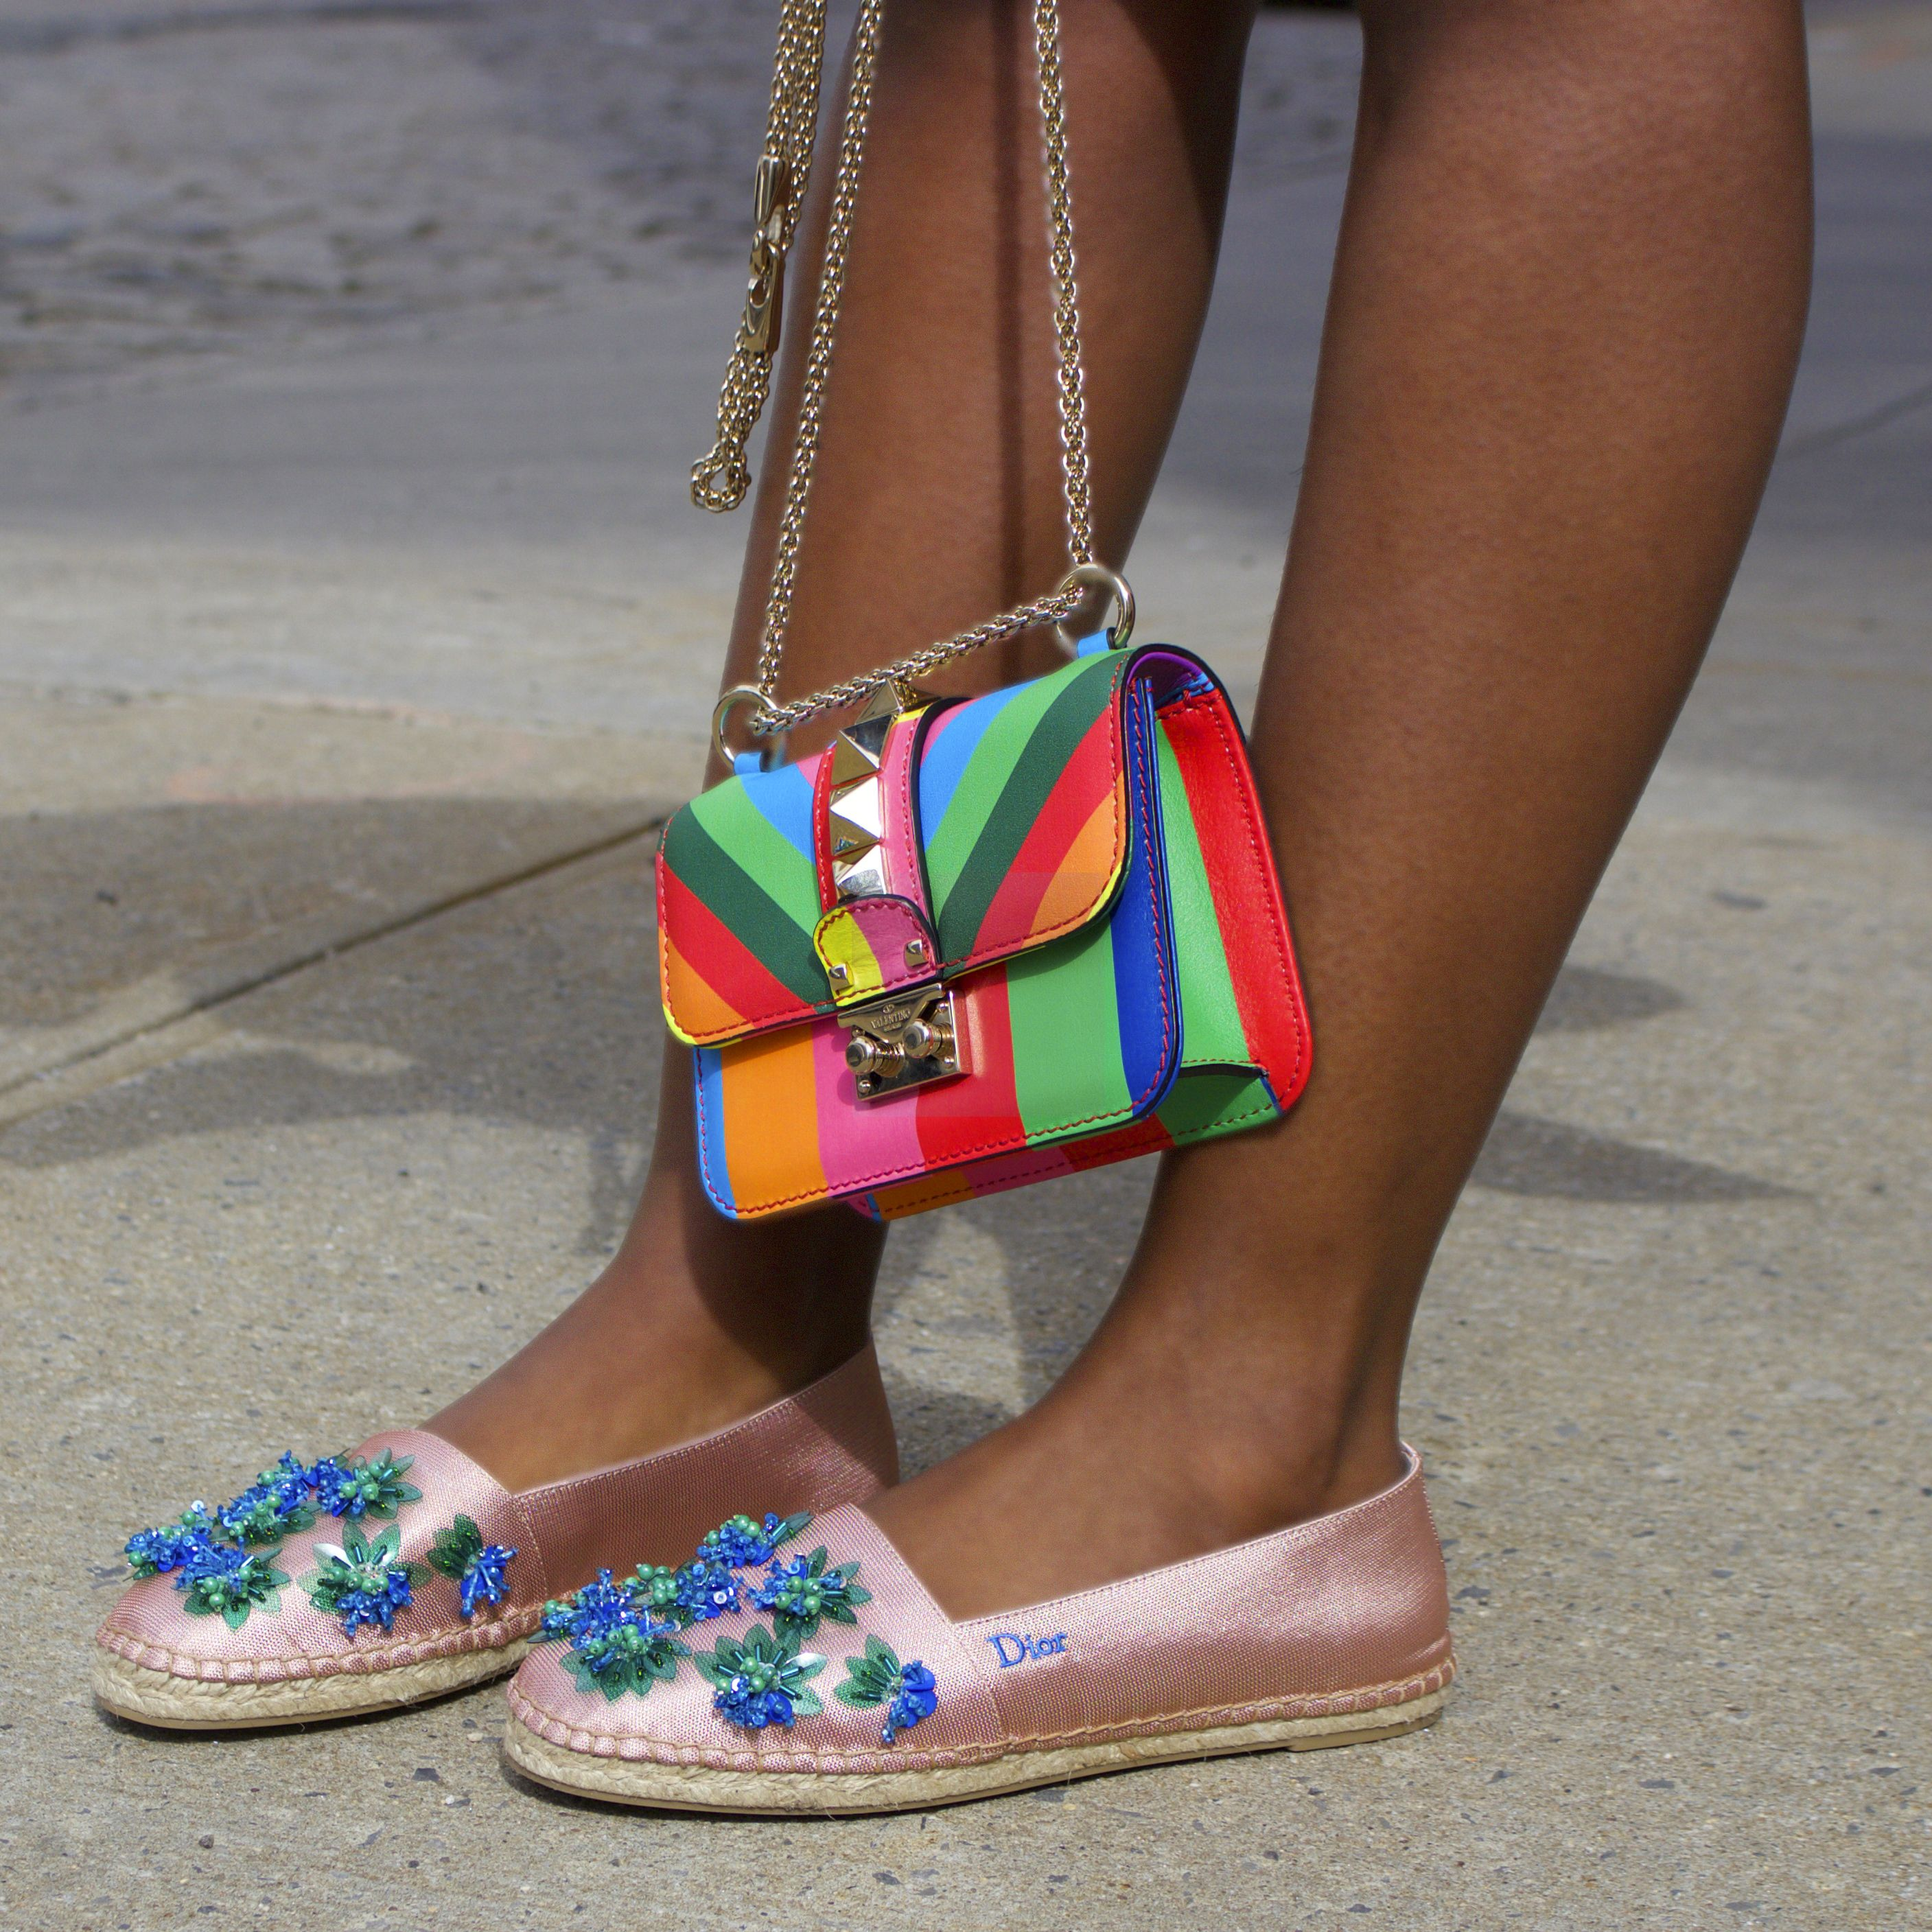 Statement Clutch - RAINBOW HEELS STAT CLUTCH by VIDA VIDA msUCyNQzF